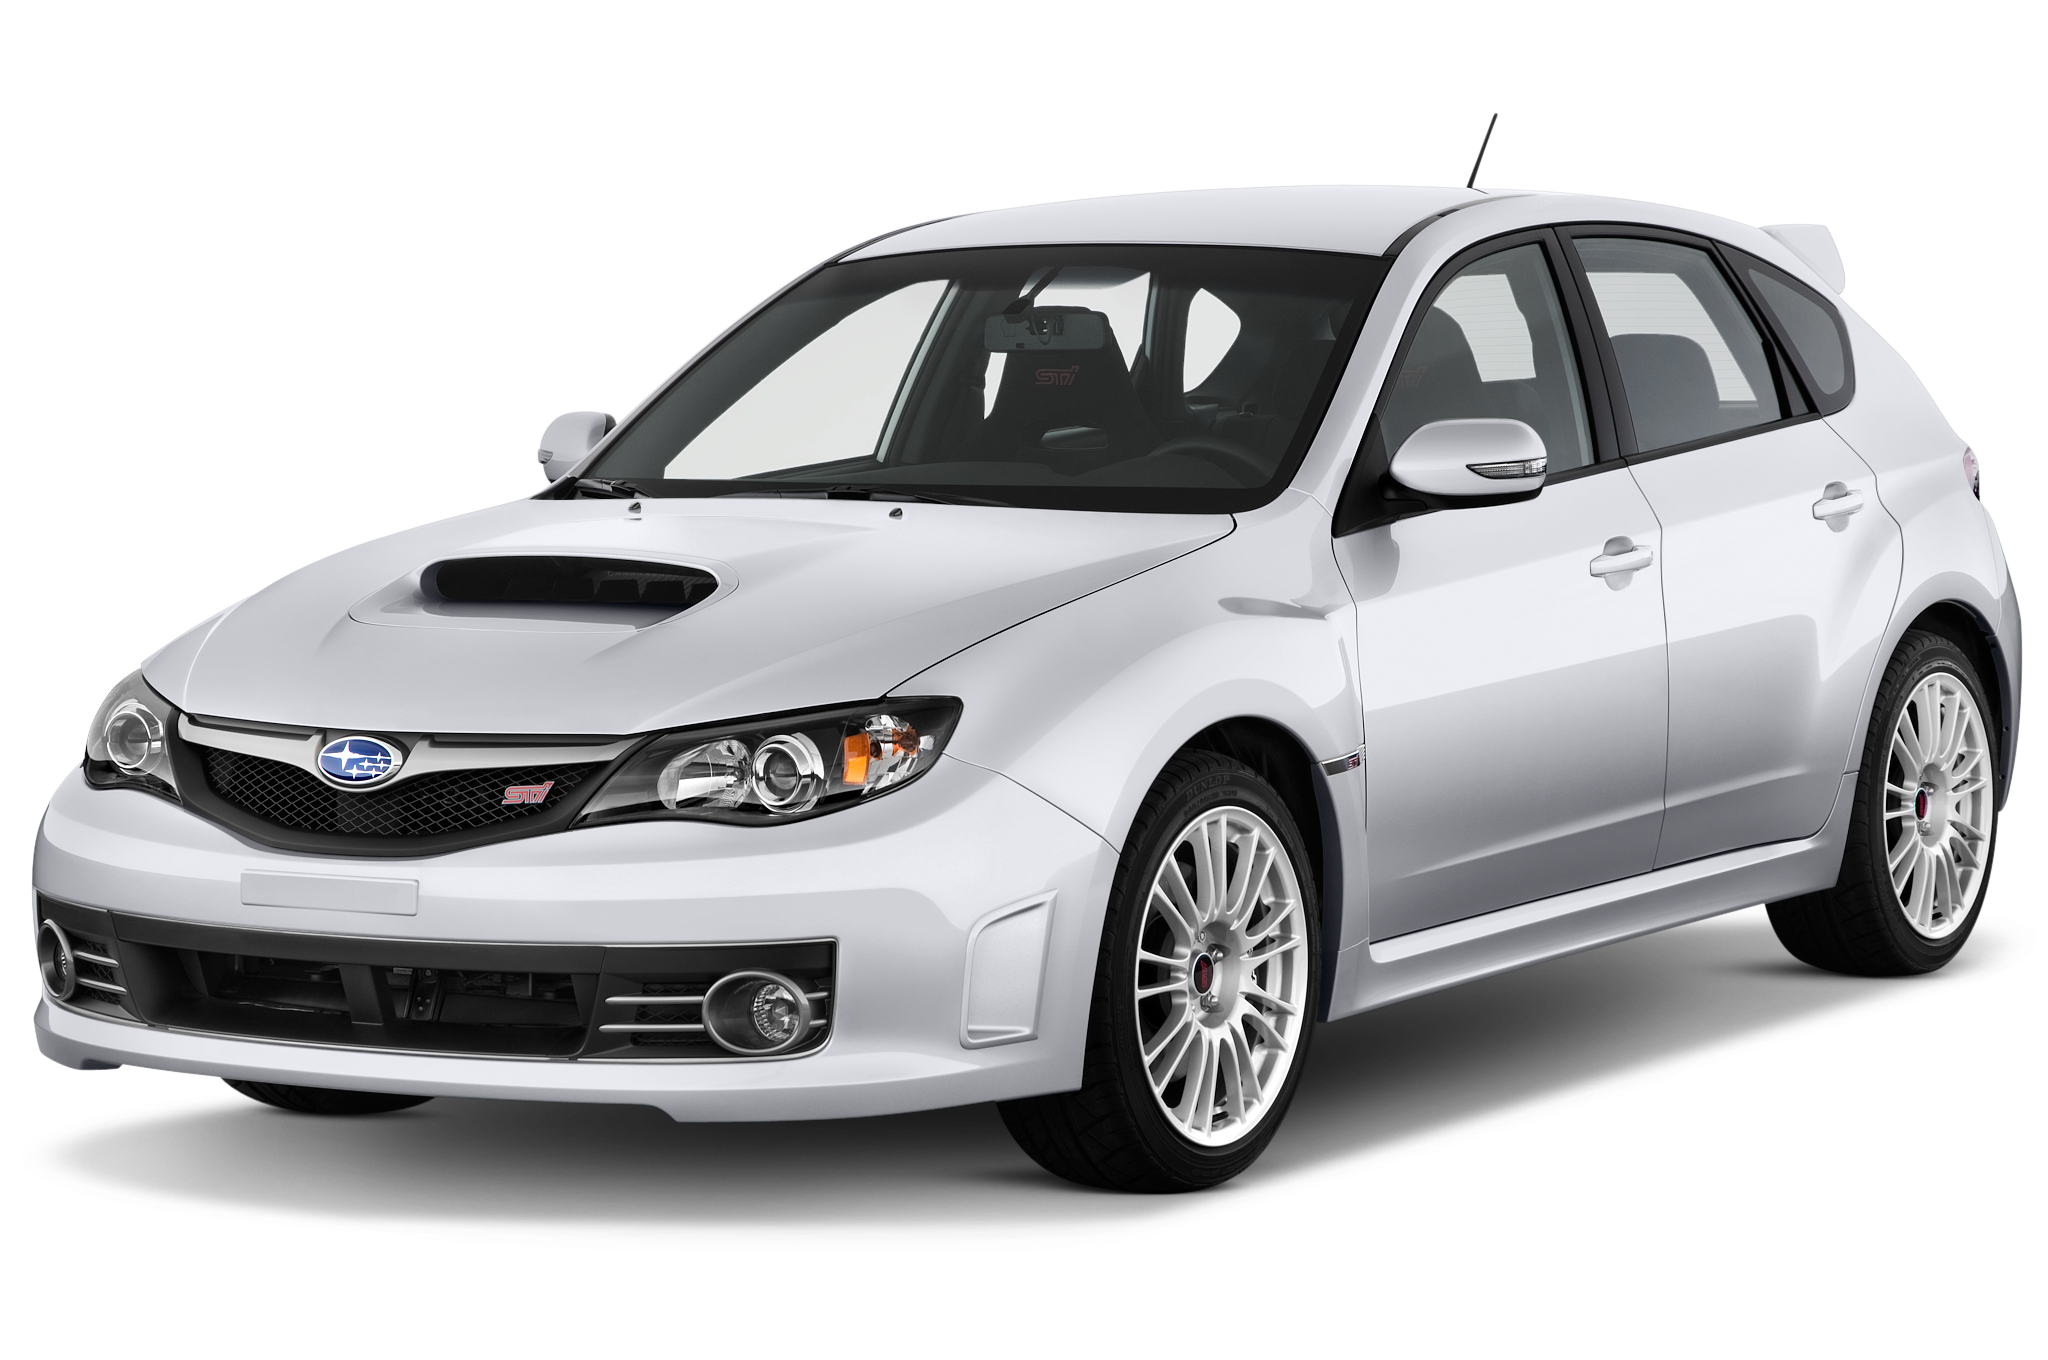 2010 subaru impreza wrx sti special edition subaru sport. Black Bedroom Furniture Sets. Home Design Ideas